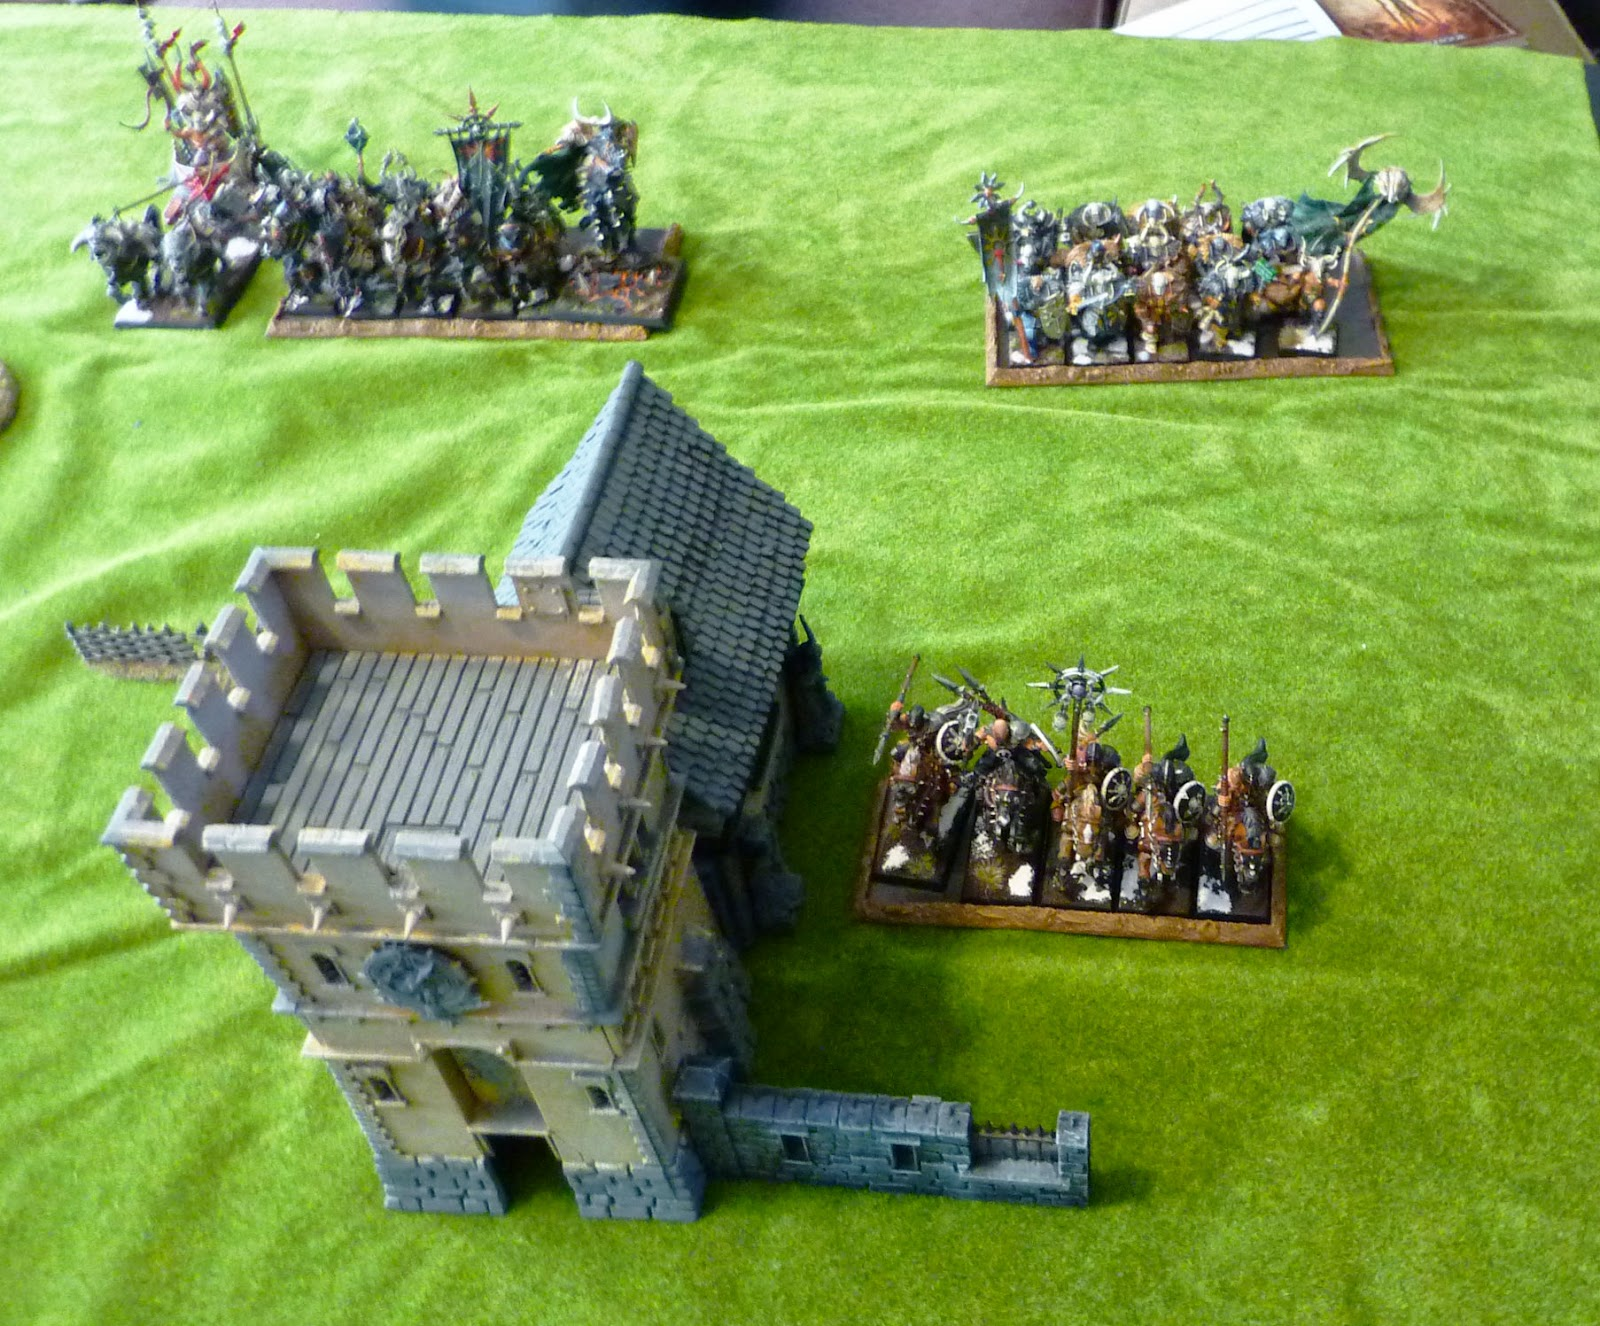 A Warhammer Fantasy Battle Report between Wood Elves and Warriors of Chaos